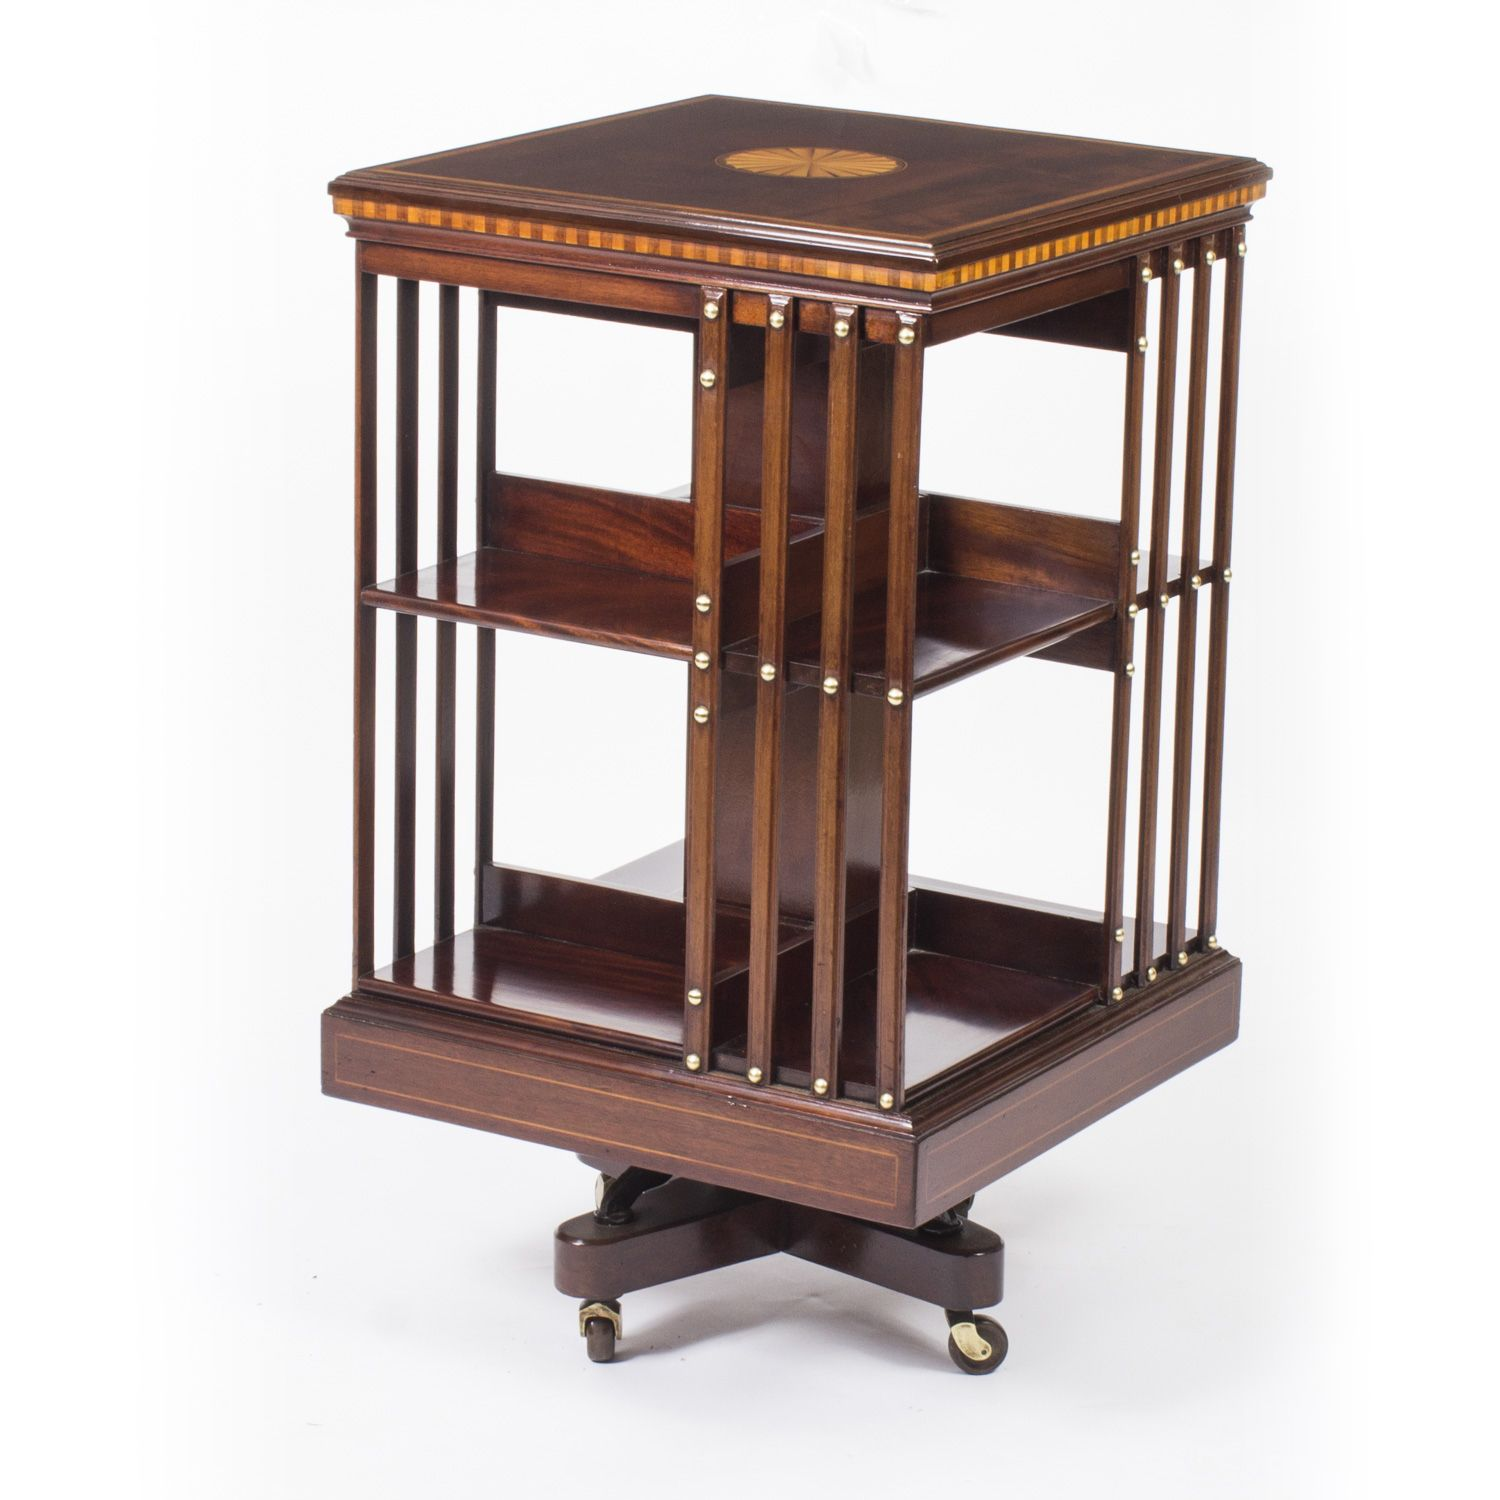 an exquisite antique revolving bookcase attributed to the renowned rh pinterest com